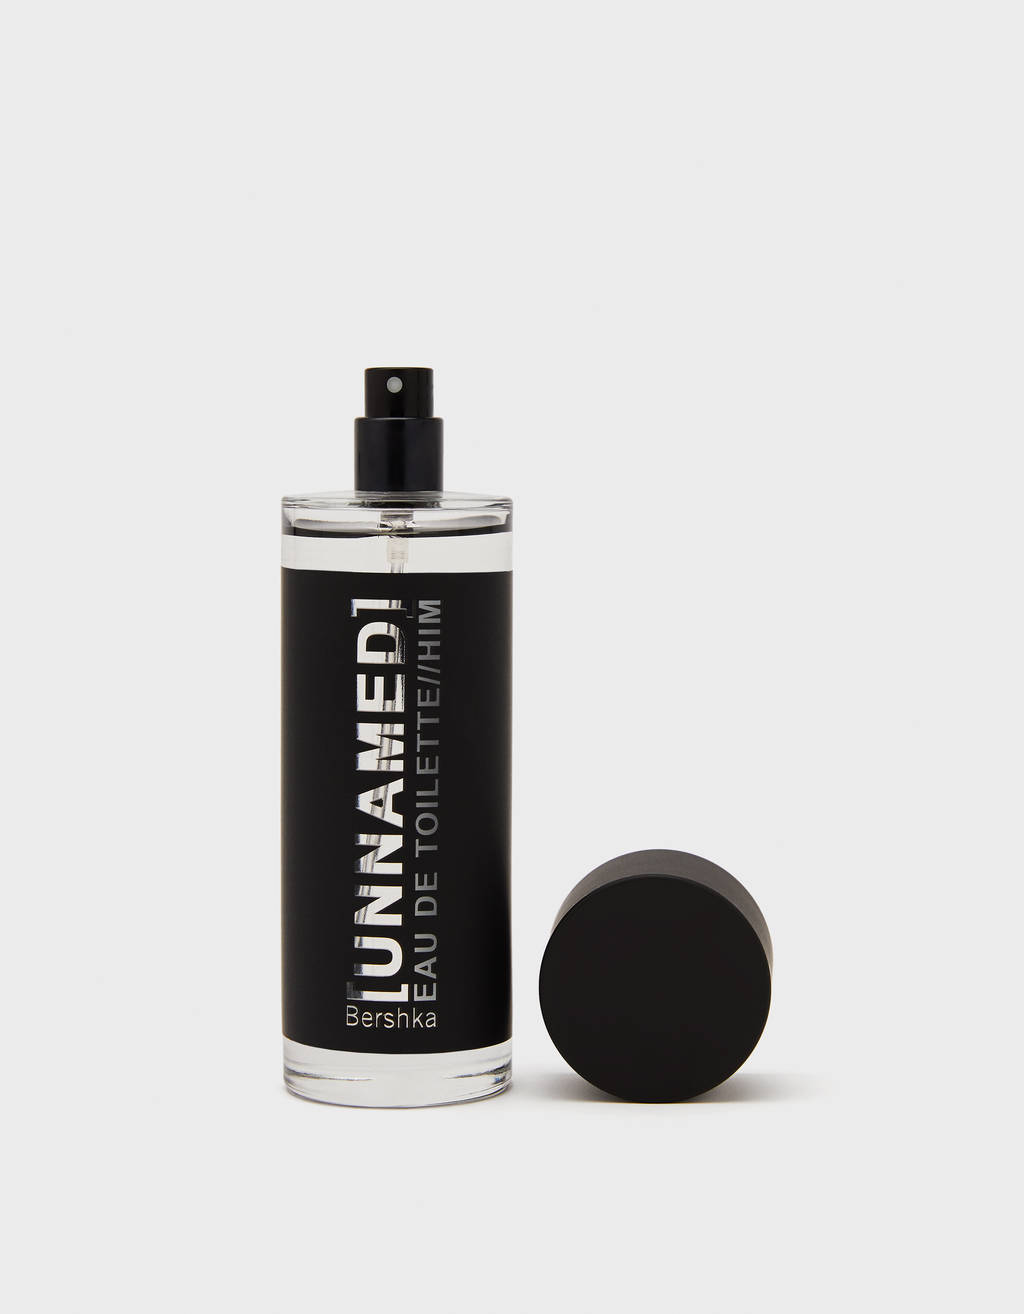 'Unnamed' eau de toilette